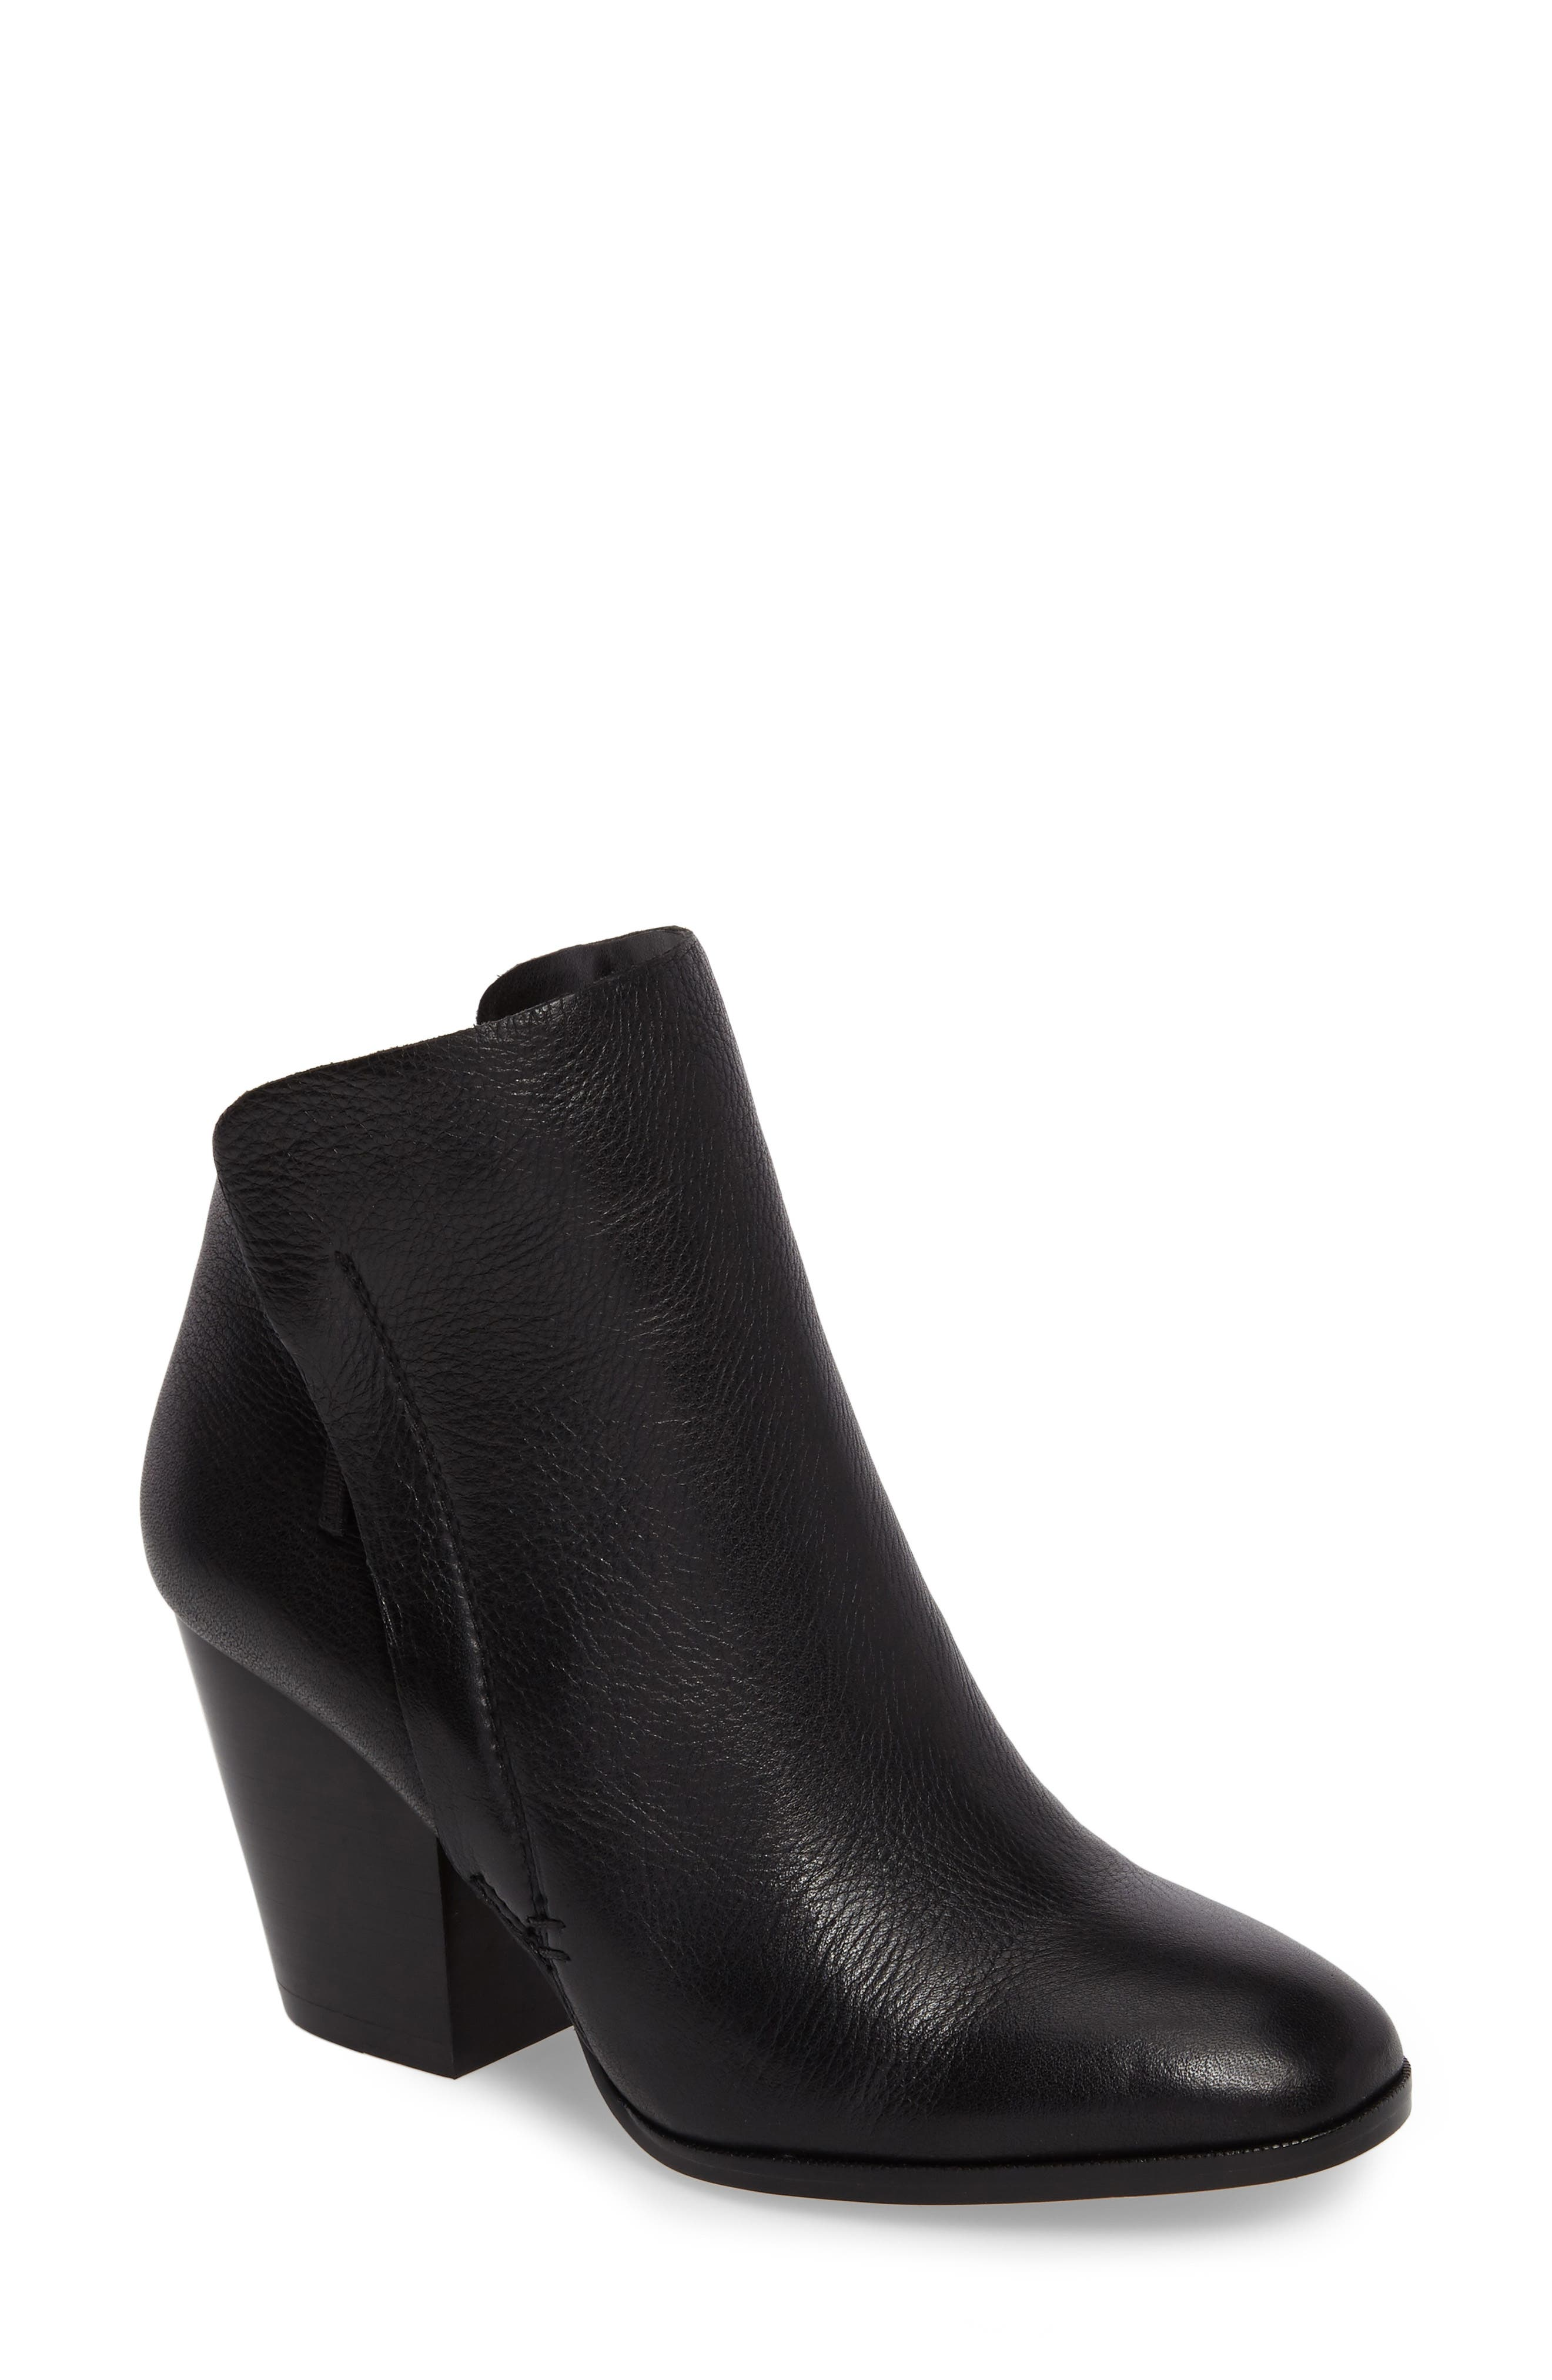 Taila Angle Zip Bootie,                         Main,                         color,